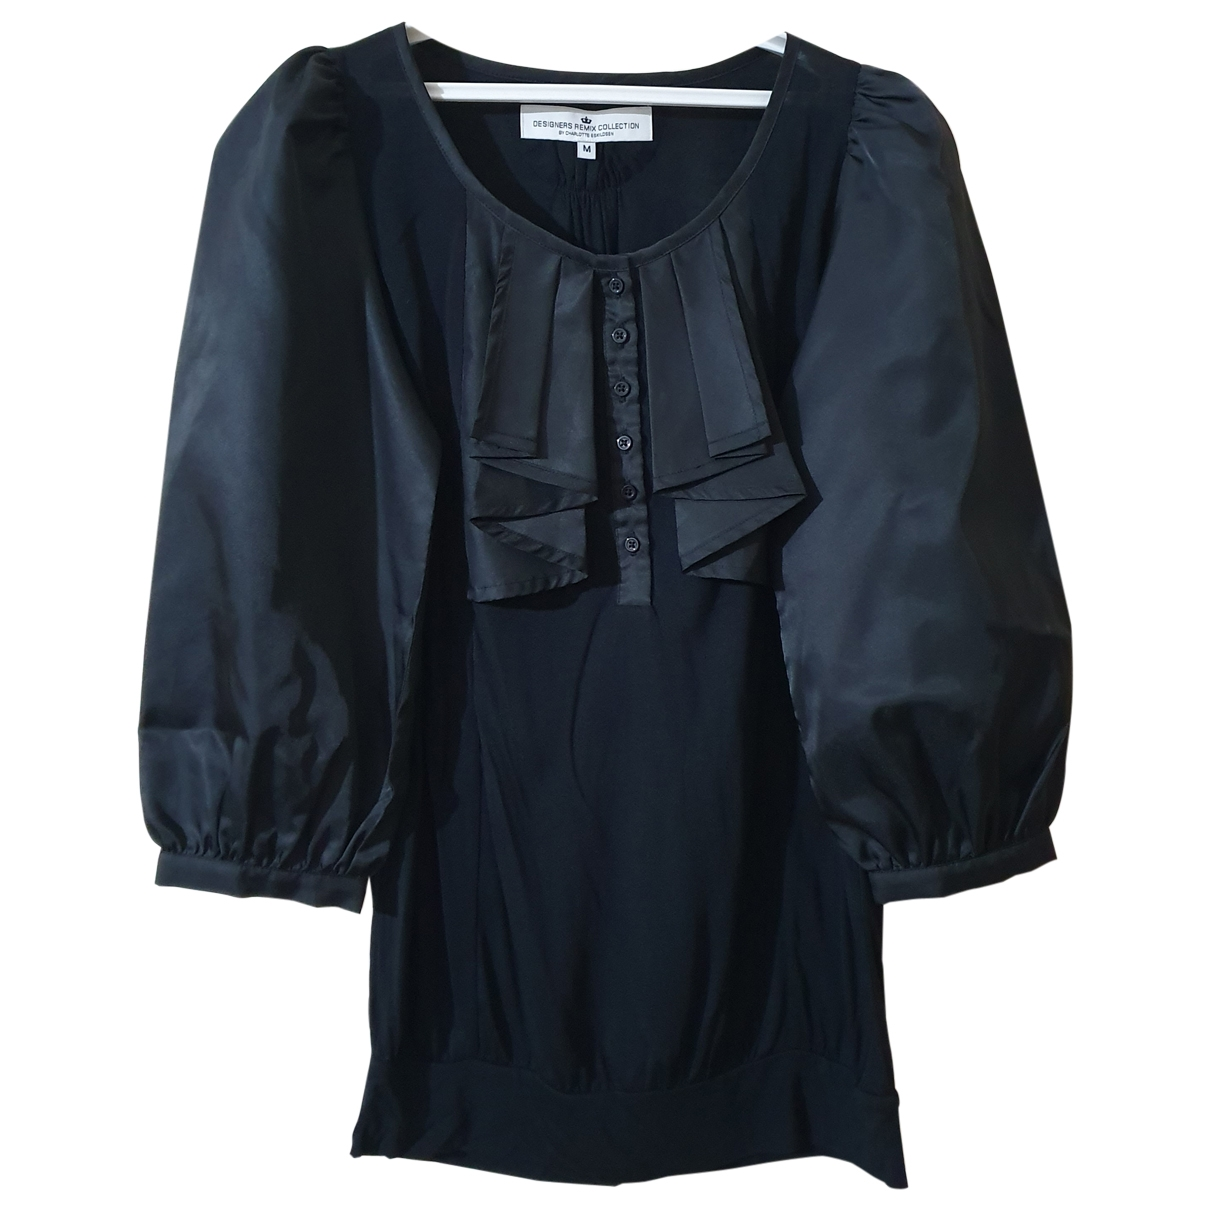 Designers Remix \N Black  top for Women M International